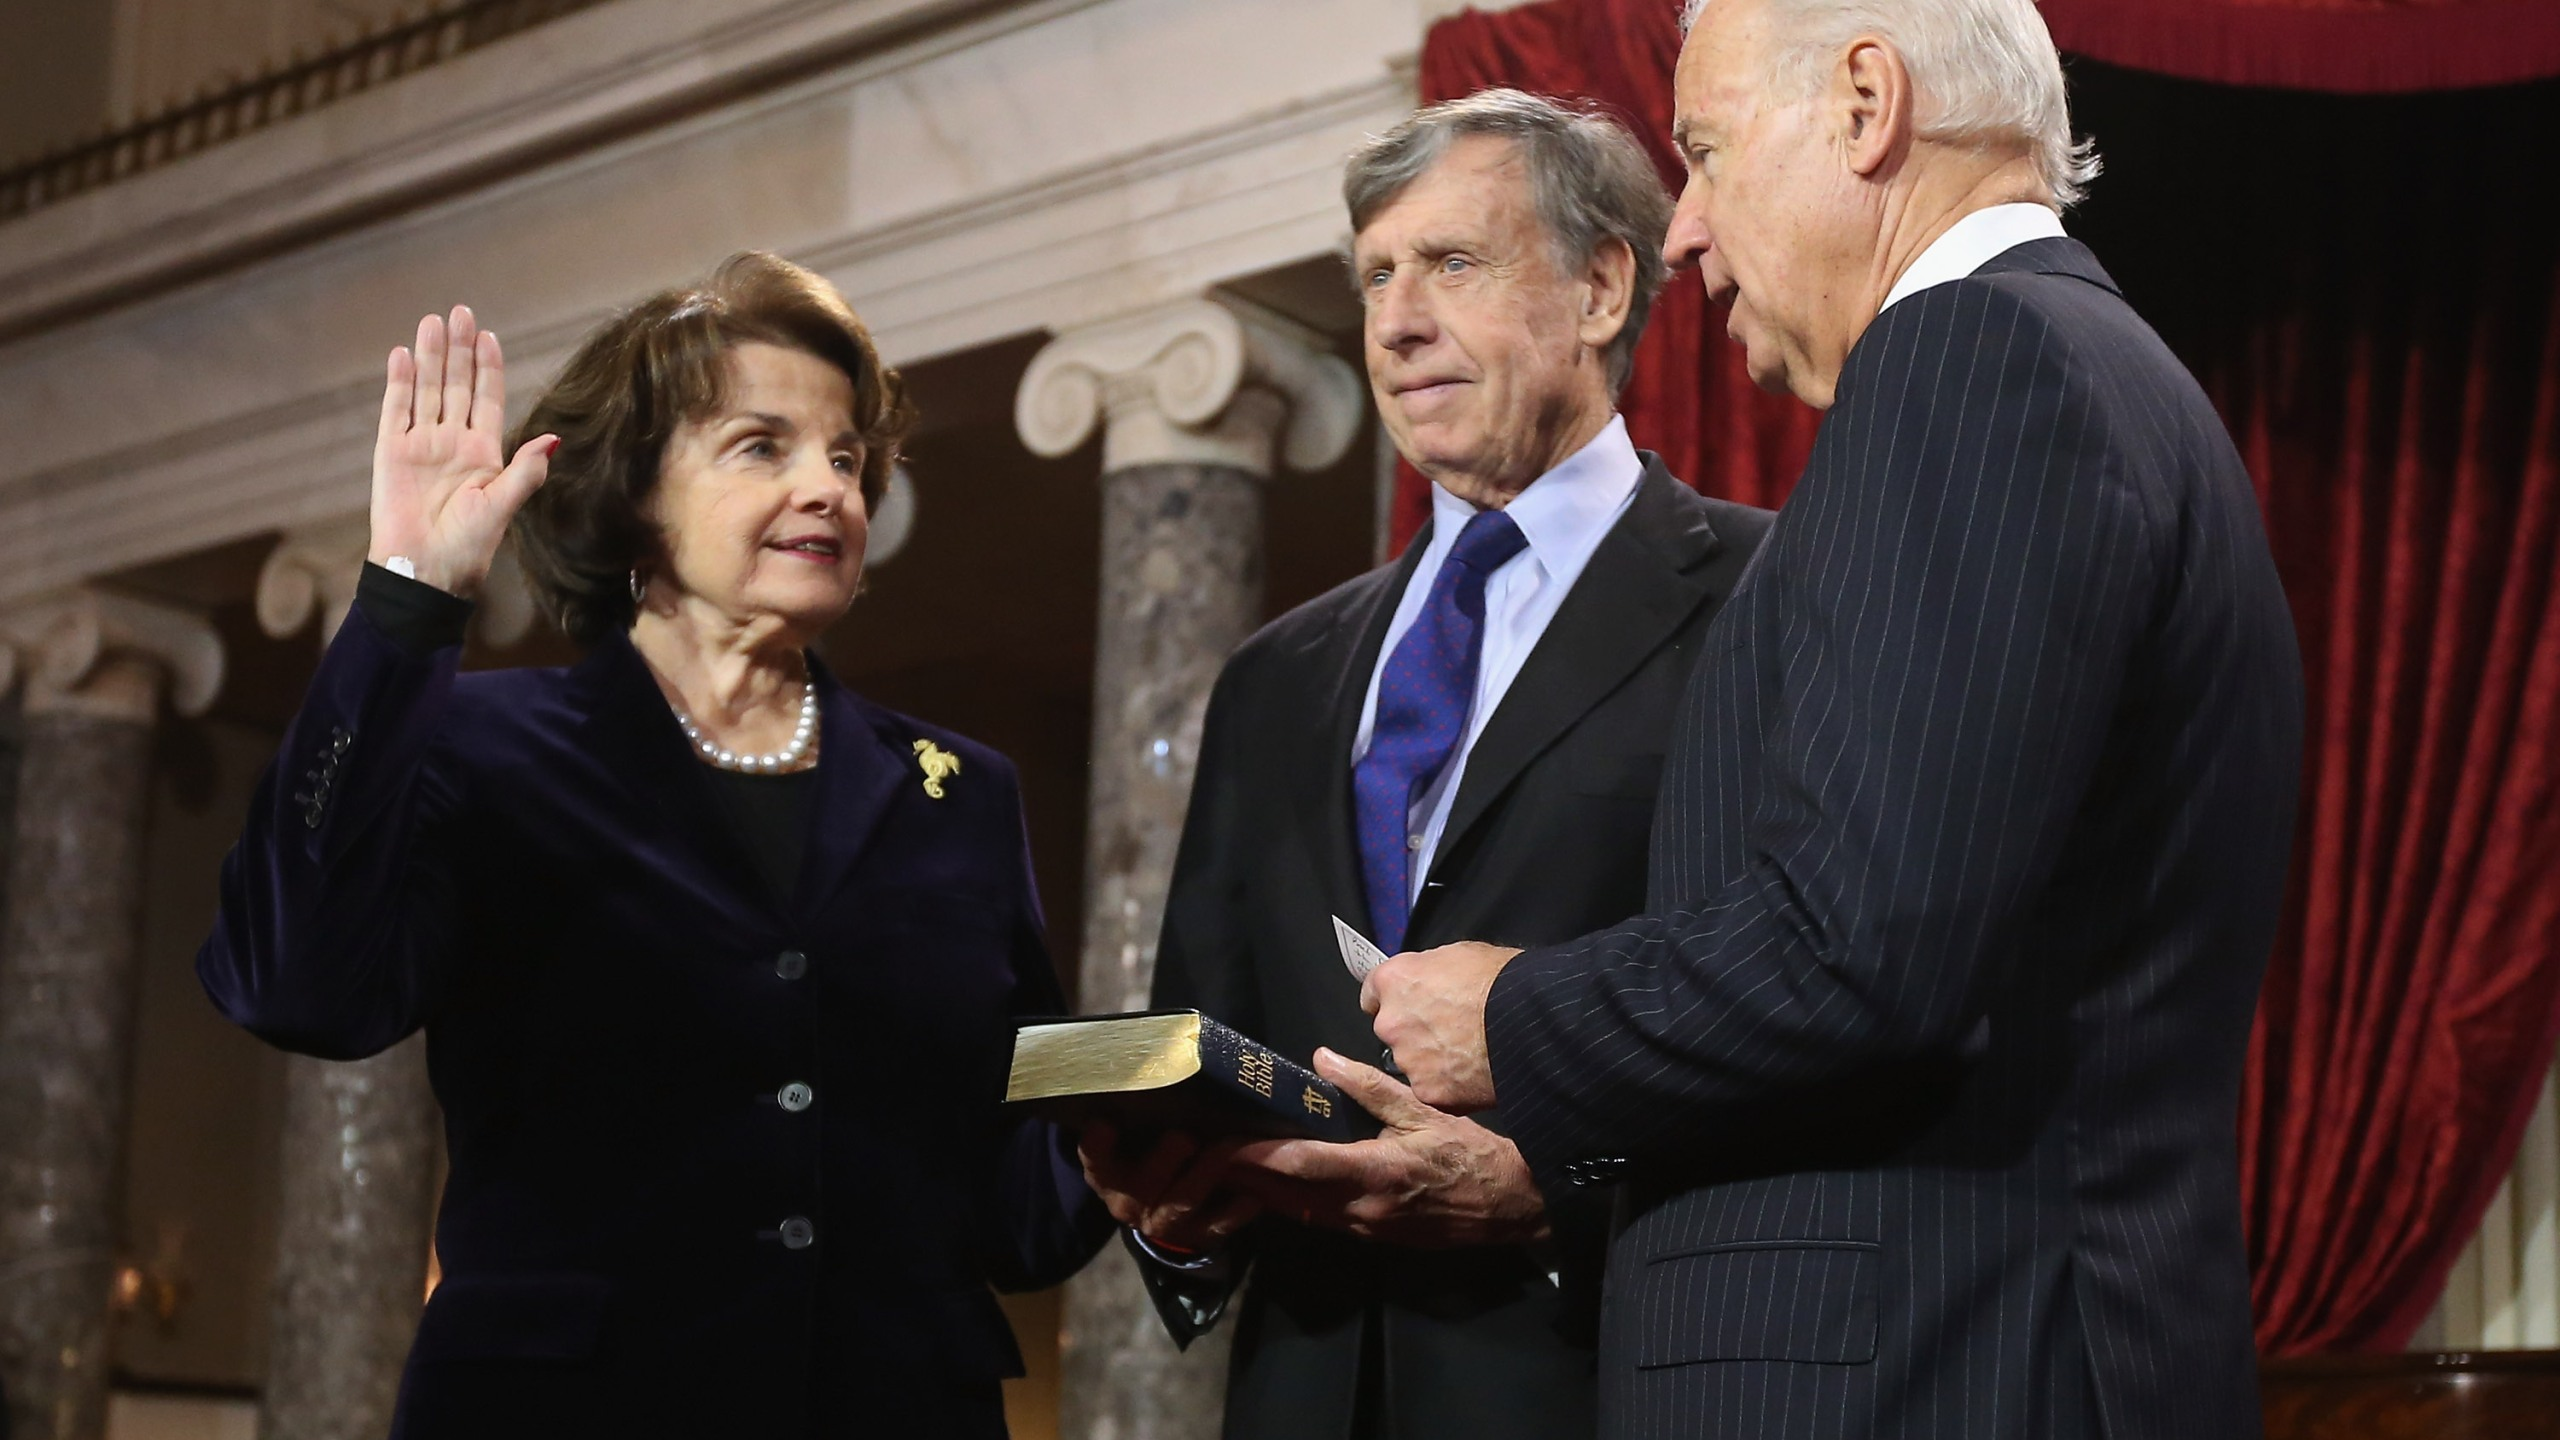 Sen. Dianne Feinstein participates in a reenacted swearing-in with her husband Richard C. Blum and U.S. Vice President Joe Biden in the Old Senate Chamber at the U.S. Capitol on Jan. 3, 2013. (Credit: Chip Somodevilla/Getty Images)